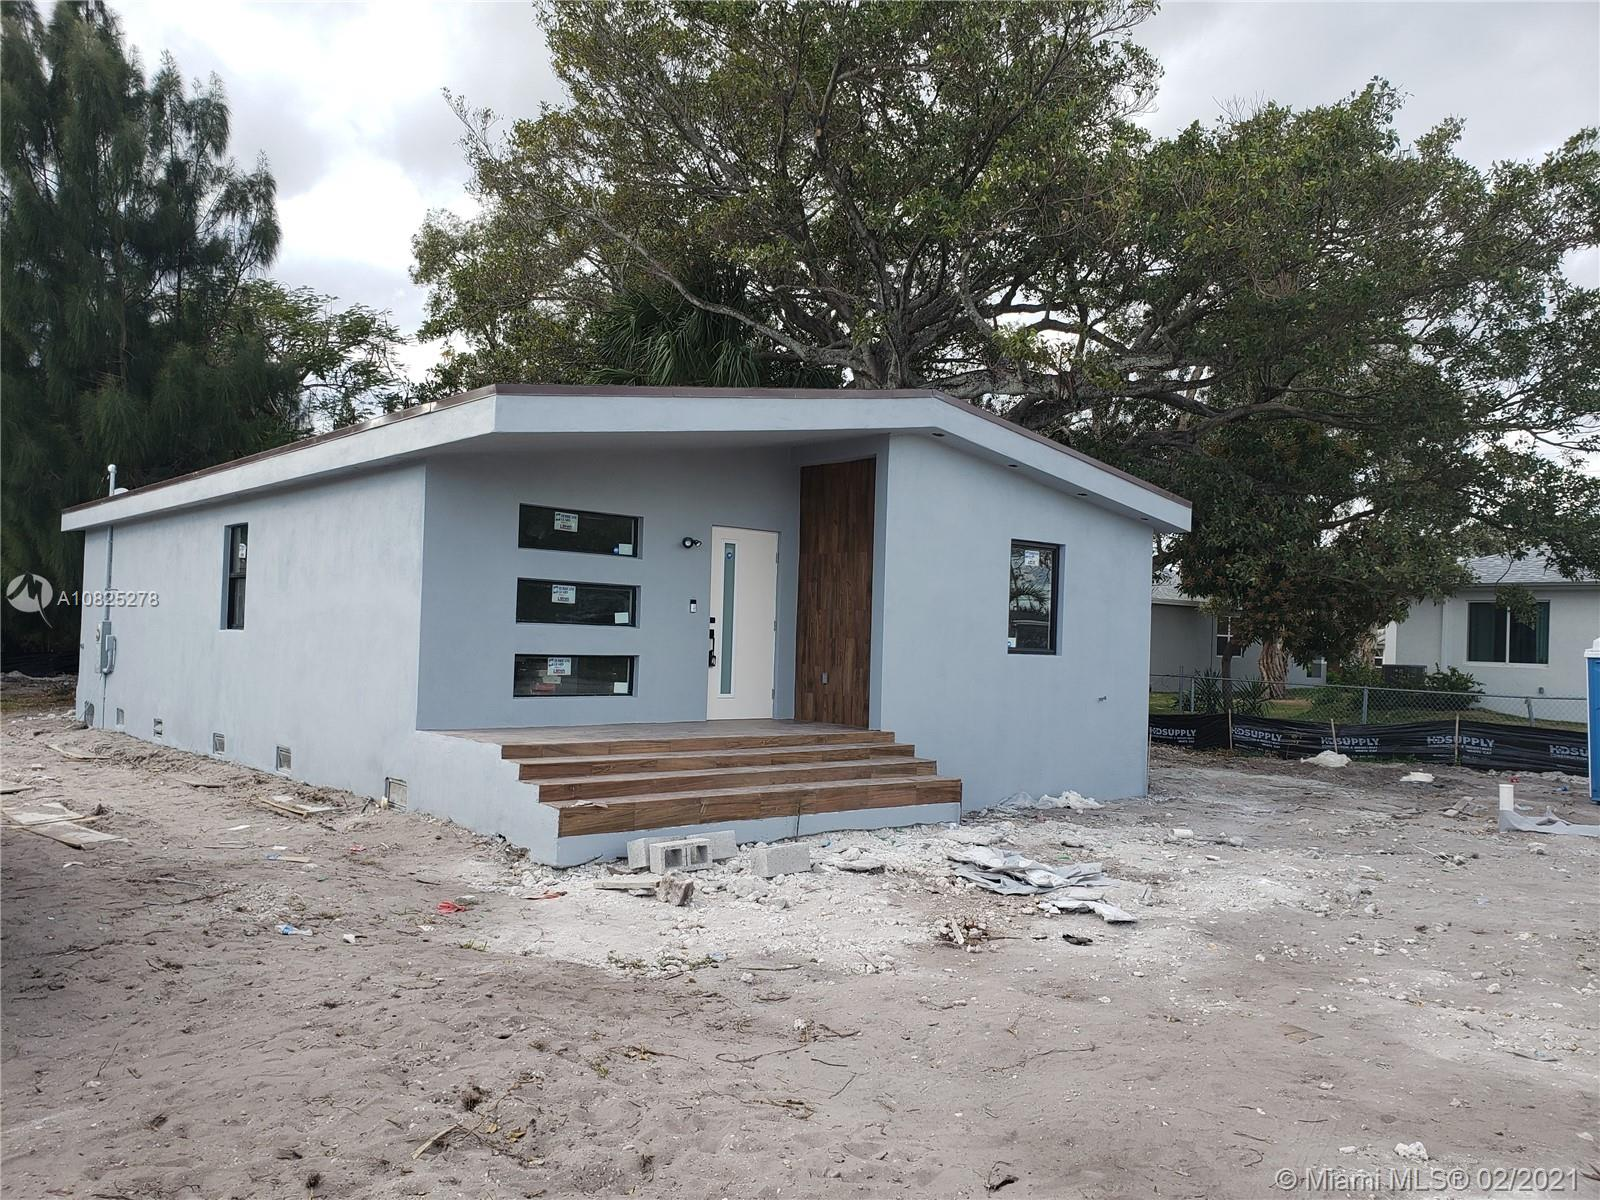 BRAND NEW SINGLE FAMILY HOME WILL CONSIST OF AN OPEN FLOOR PLAN LAYOUT WITH 3 BEDROOMS 2 BATHROOMS,PATIO, IMPACT WINDOWS, SMART HOME FEATURES AND MANY MORE FEATURES!THIS AMAZING LOCATION, WALK TO SCHOOL, RESTAURANTS, SHOPPING, PARKS & MORE.  1,400 SQ FT